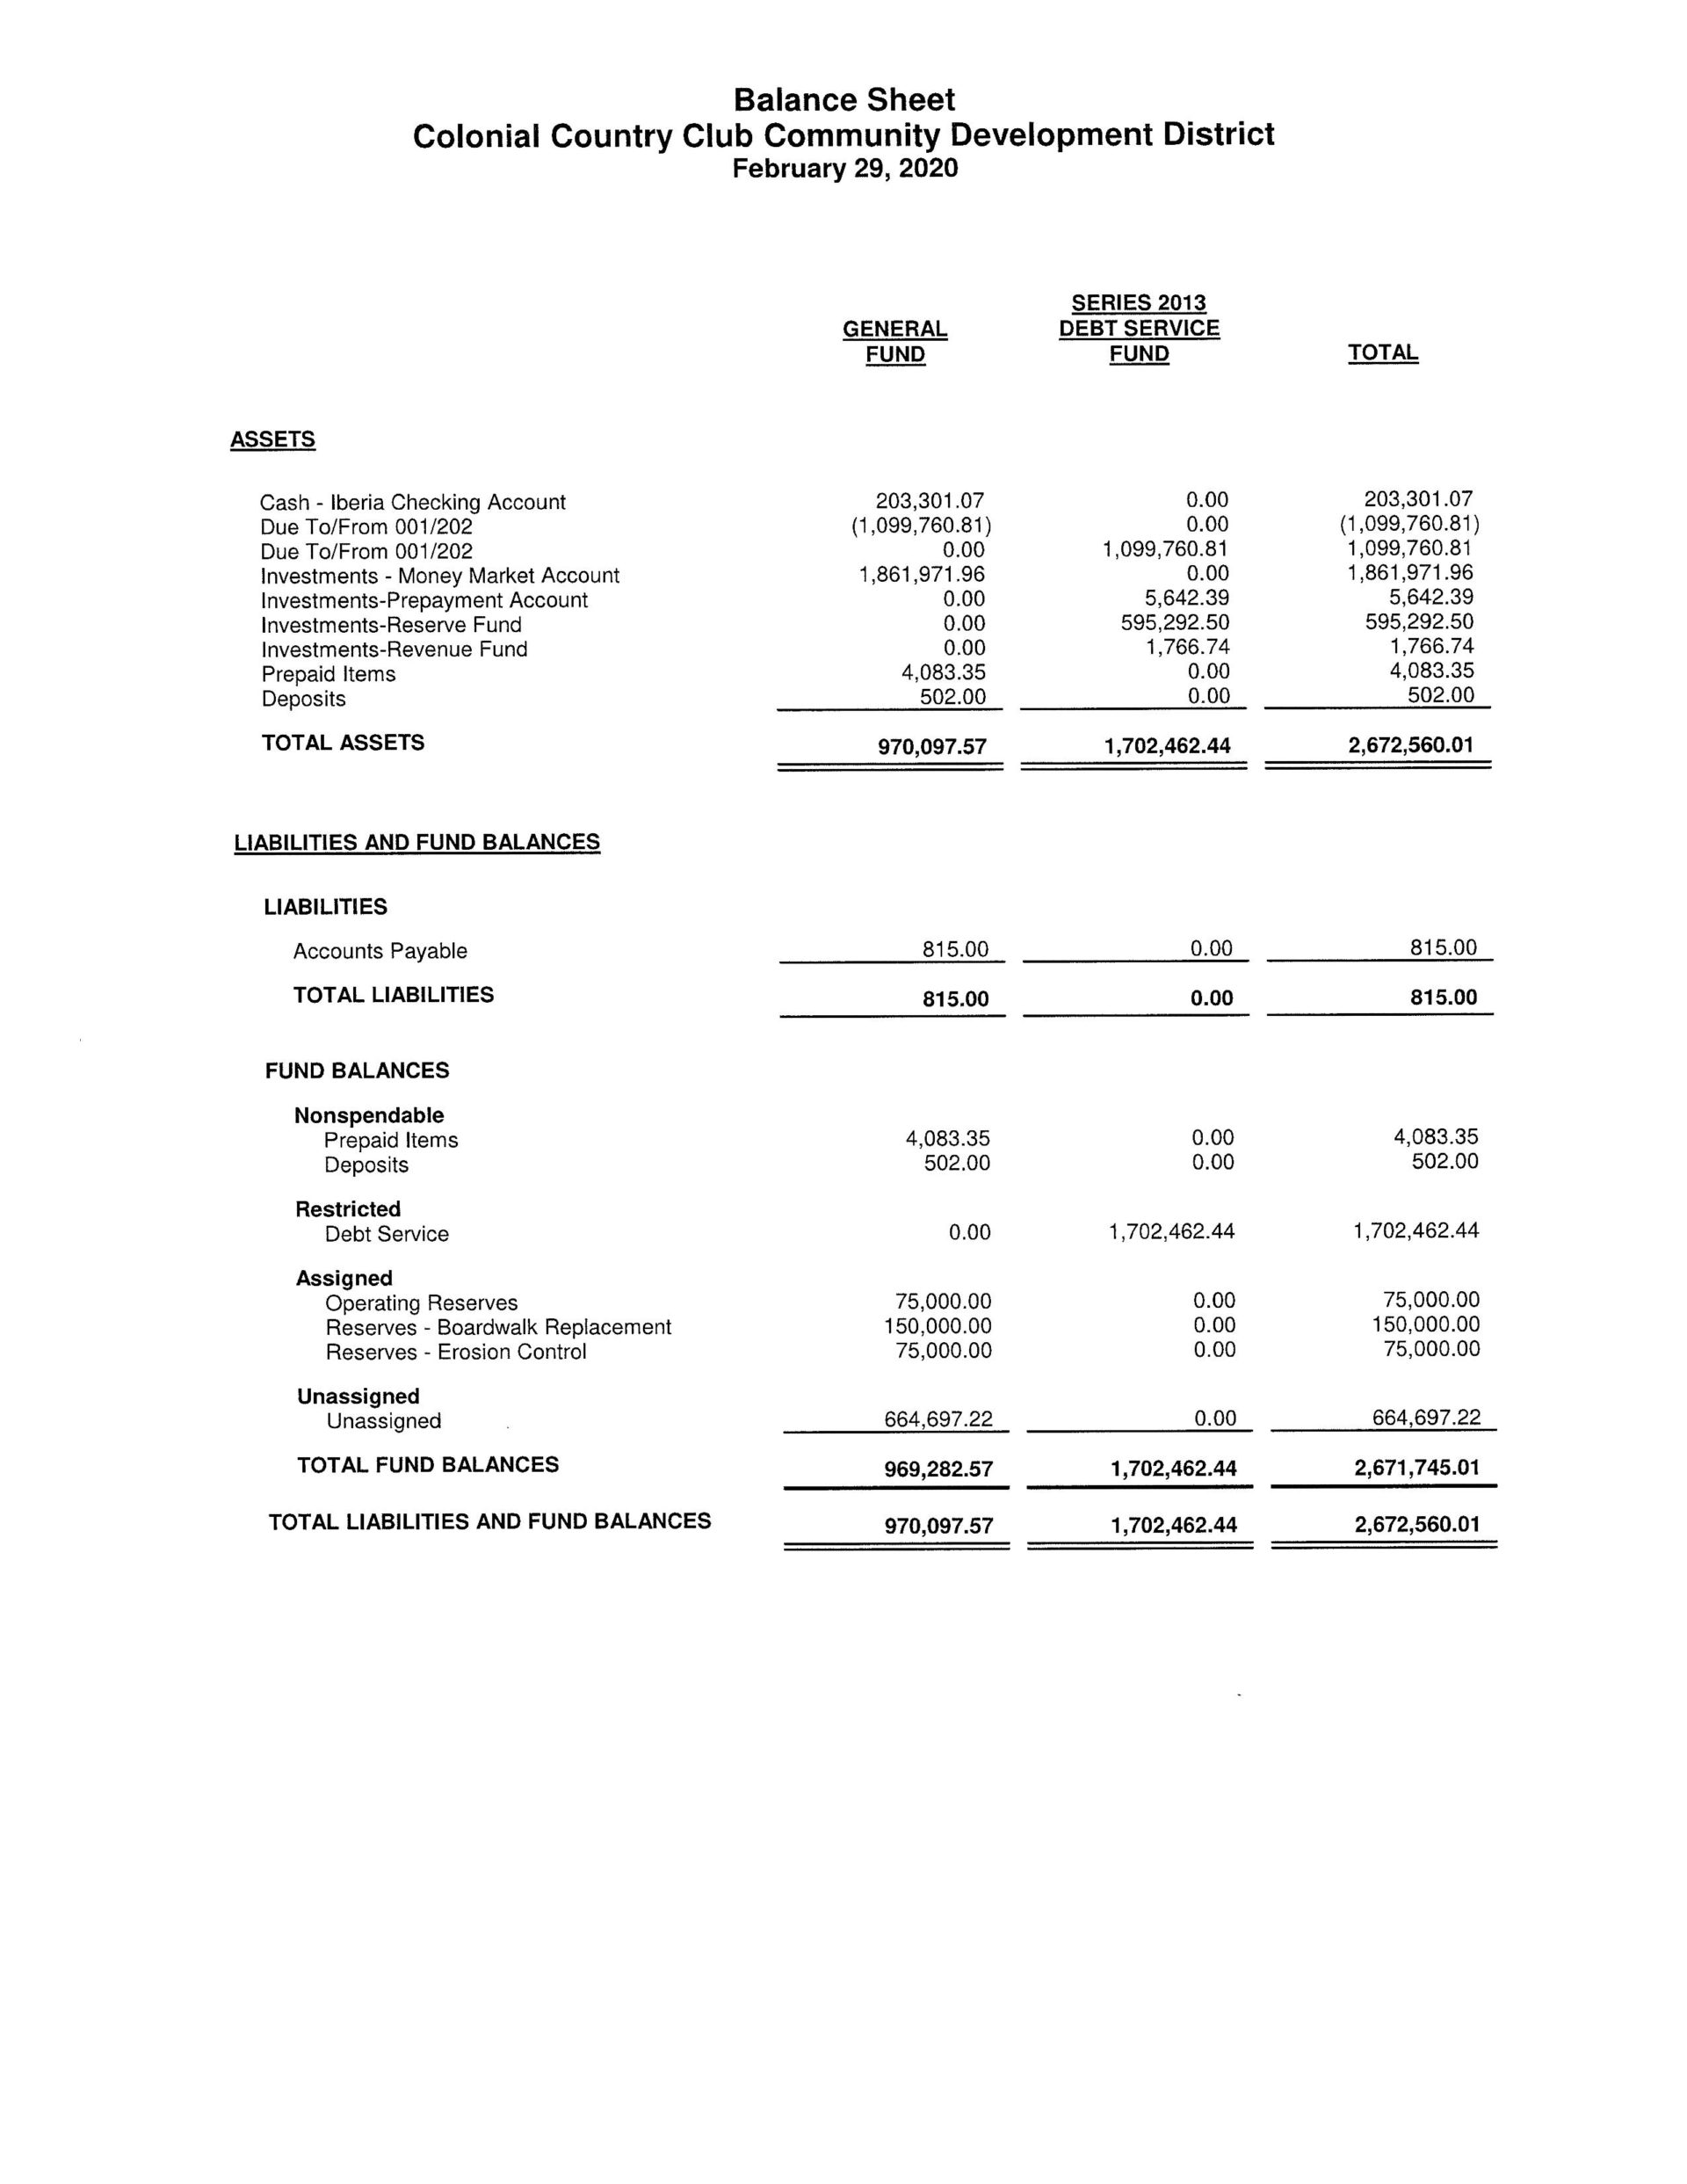 Colonial Country Club CDD Balance Sheet